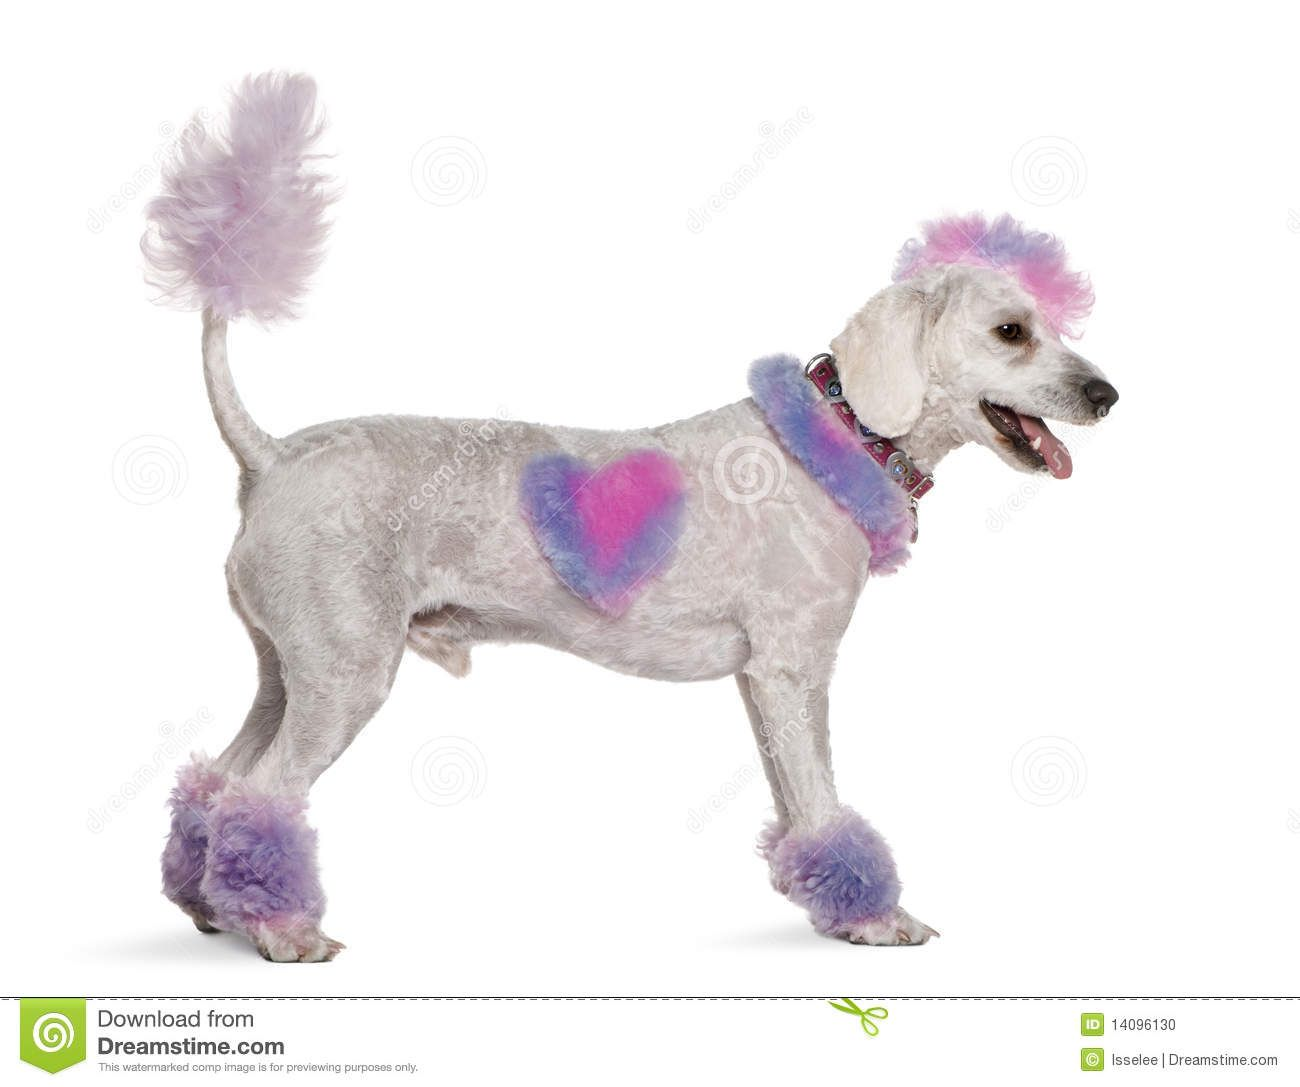 Groomed poodle with pink and purple fur and mohawk, 1 year